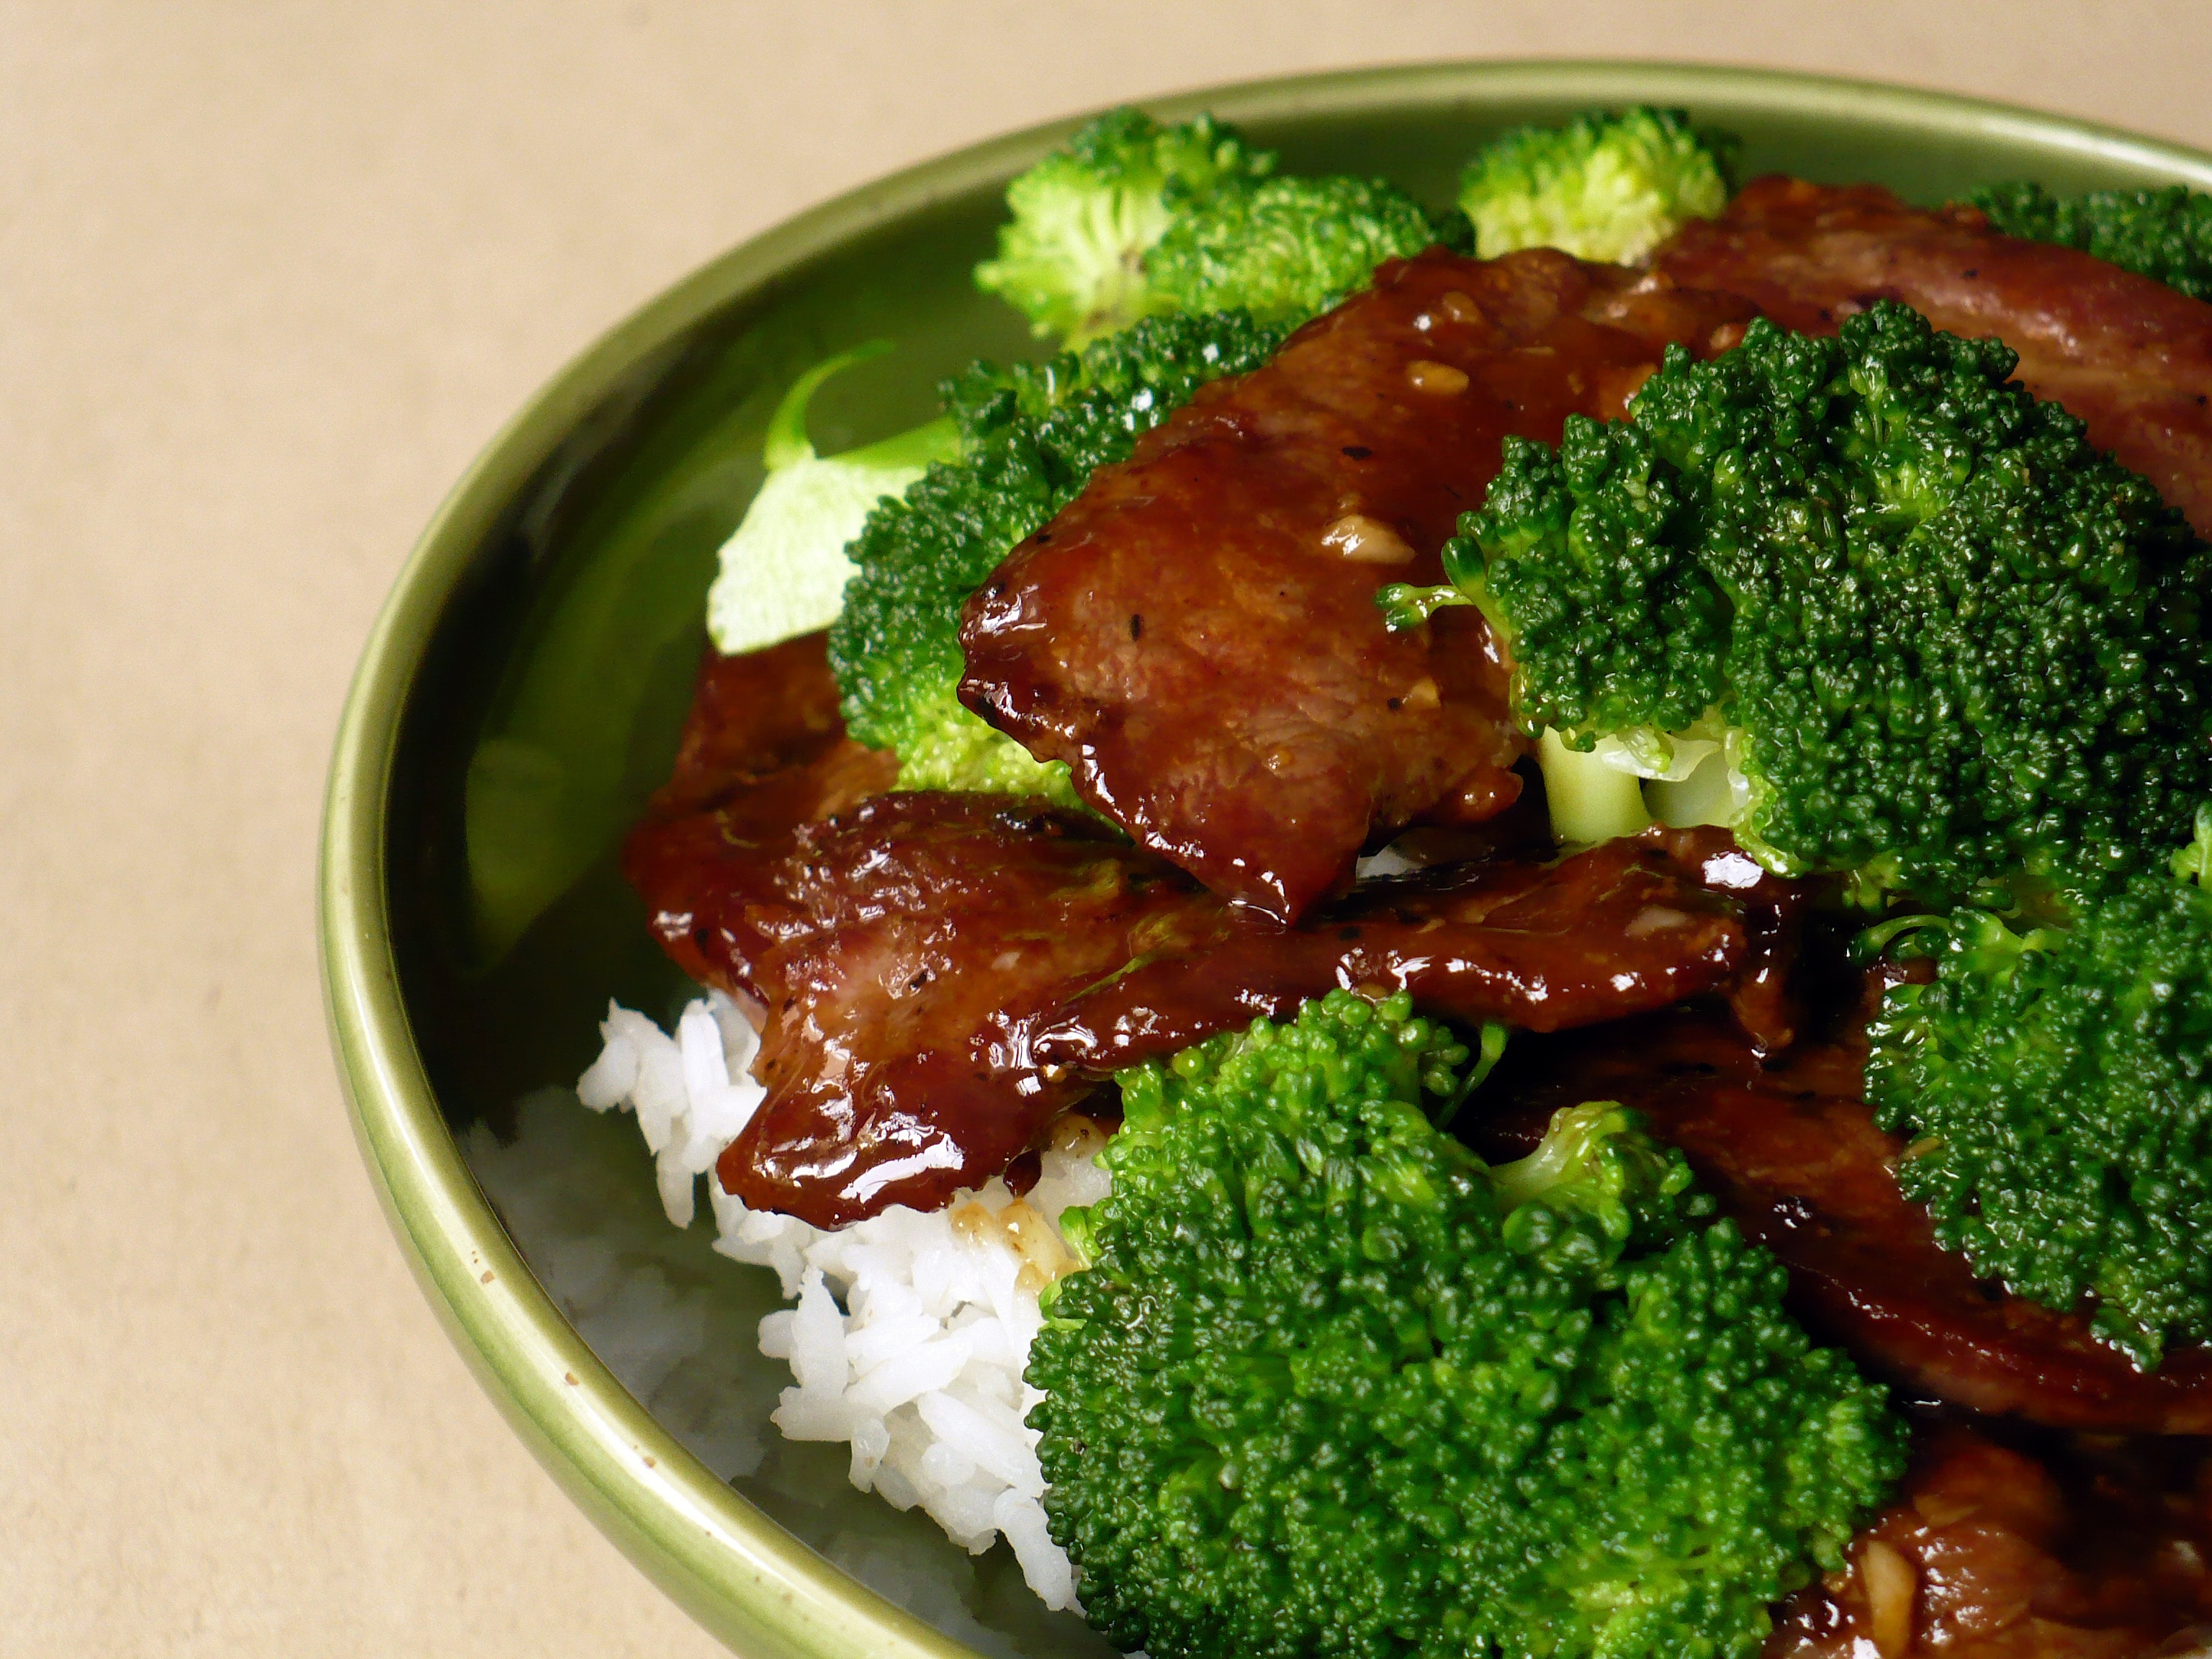 ... beef with rice wine call chinese broccoli beef chinese broccoli beef